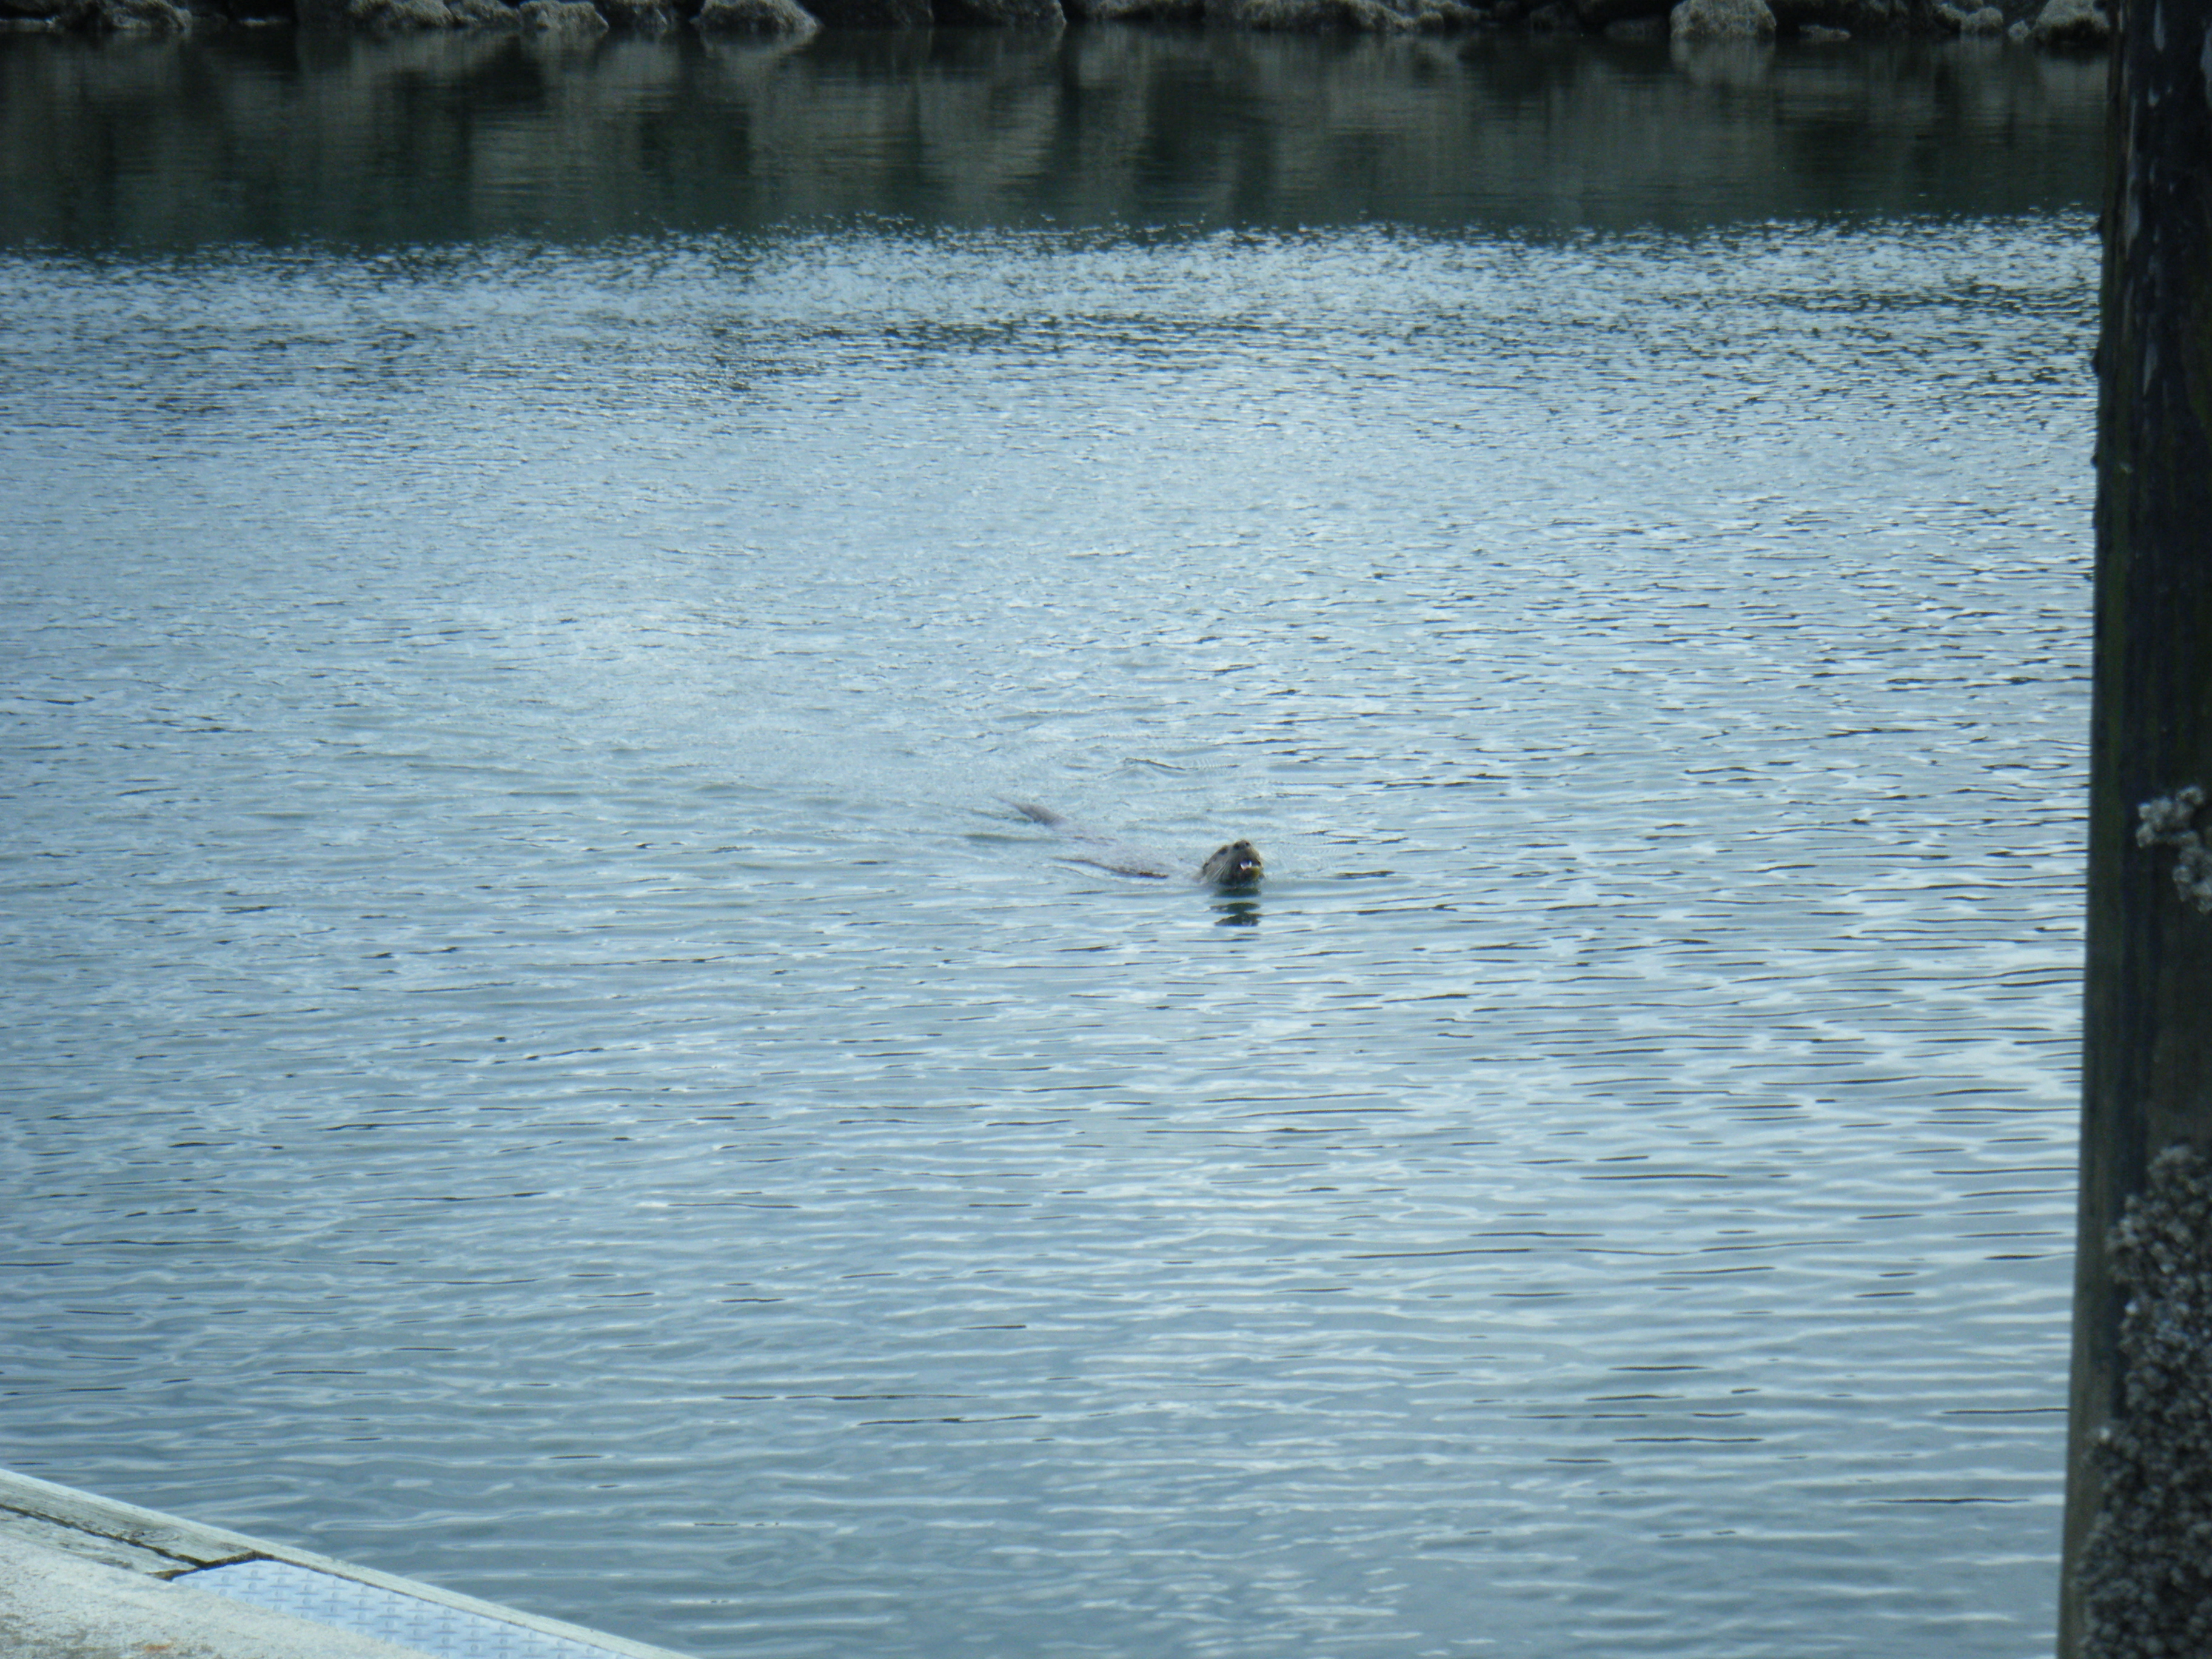 Sea Otter Out Hunting